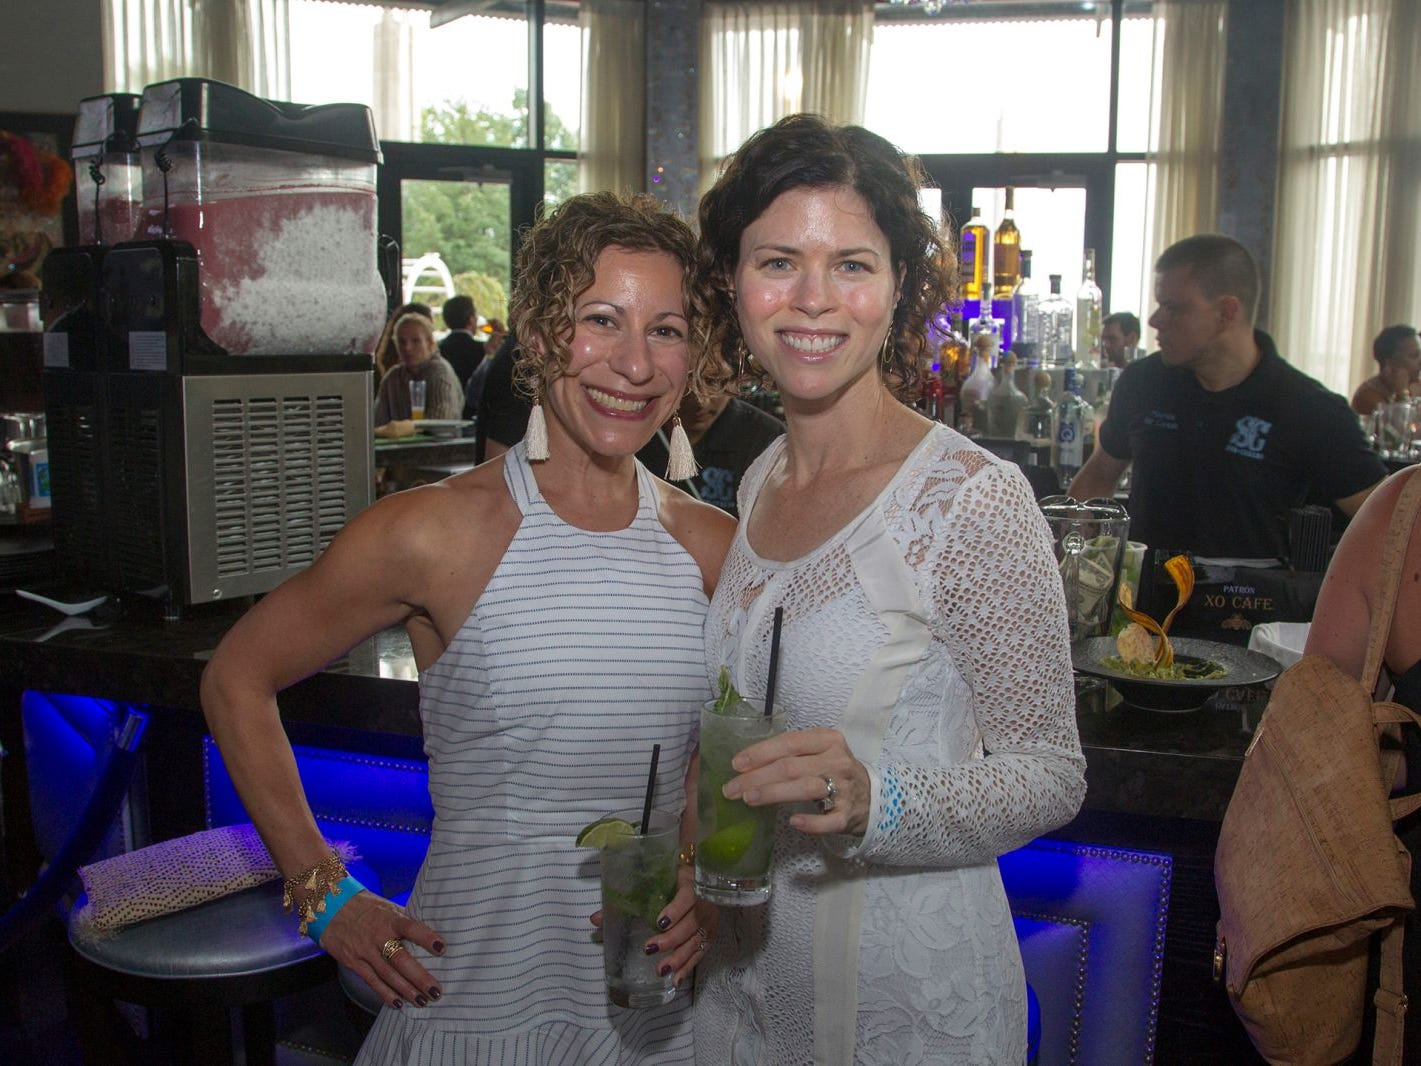 Karen Lerman and Stacey Bradford. Summer Samba Night benefitting Tackle Kids Cancer hosted by Cara Robles, Luis Robles (NY Red Bulls Goalkeeper), Jennifer Farber, and Dr. Michael Farber at Son Cubano in West New York. 08/08/2018